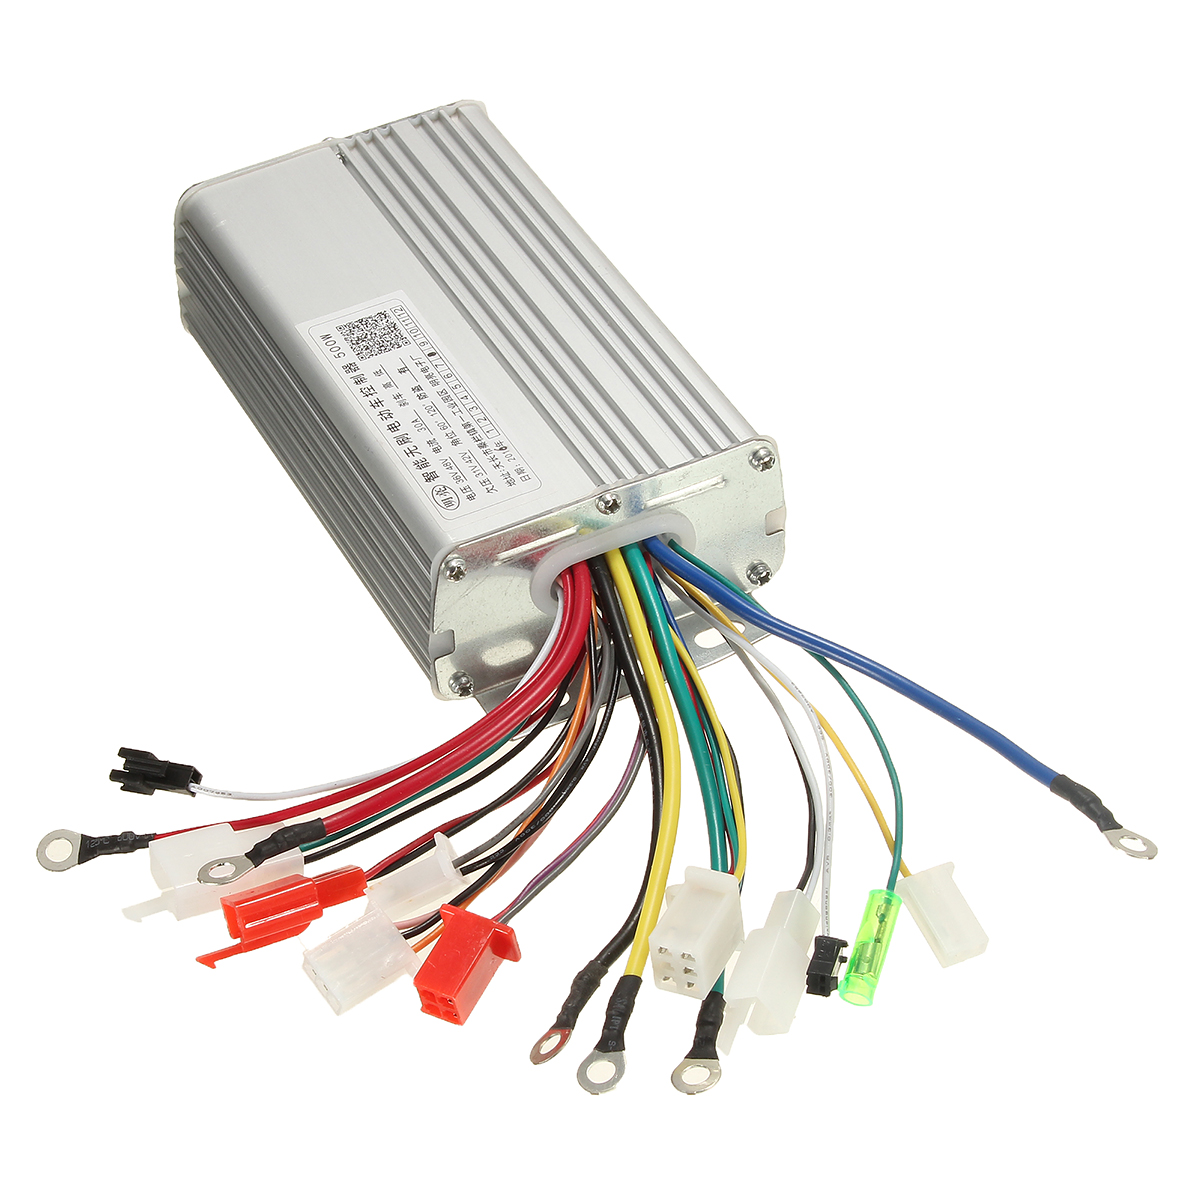 48V 500W 30A Brushless Motor Controller for Electric Scooters Bike